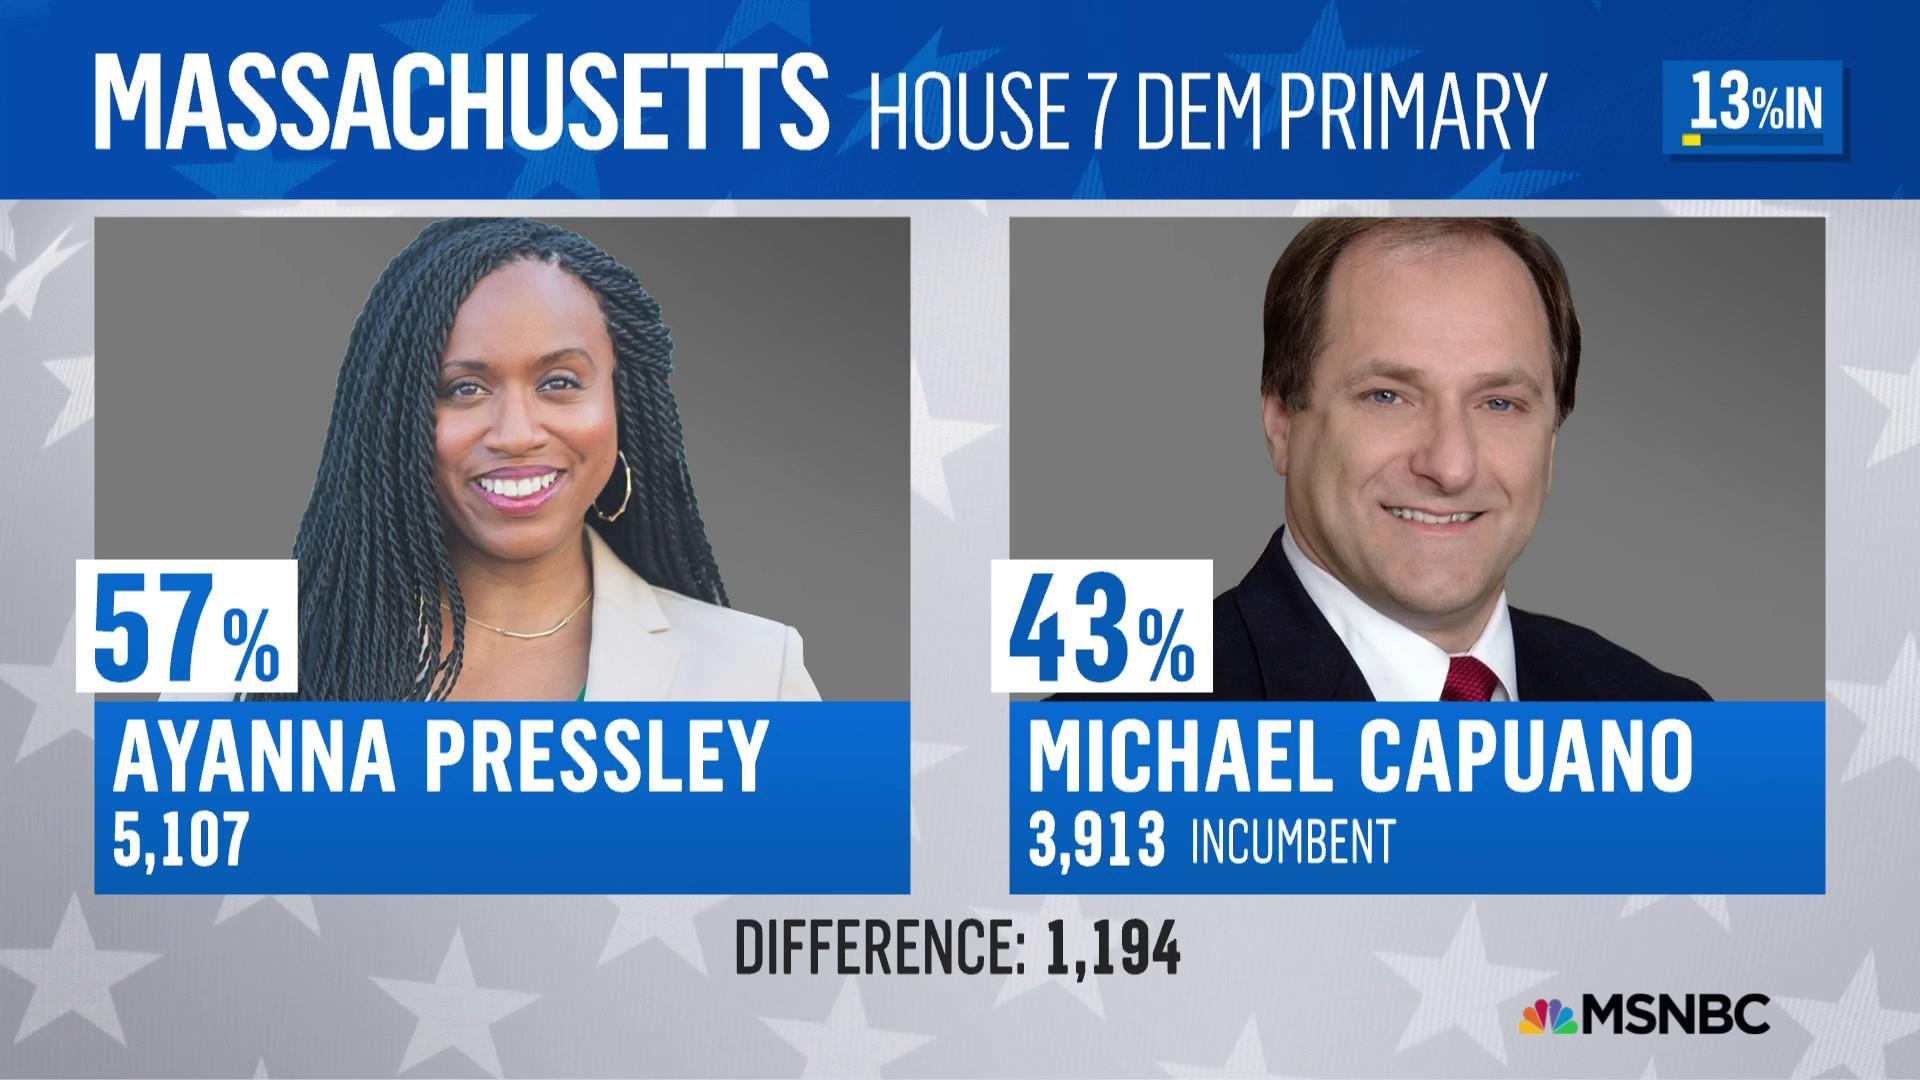 Ayanna Pressley upsets incumbent Michael Capuano in MA-07 primary